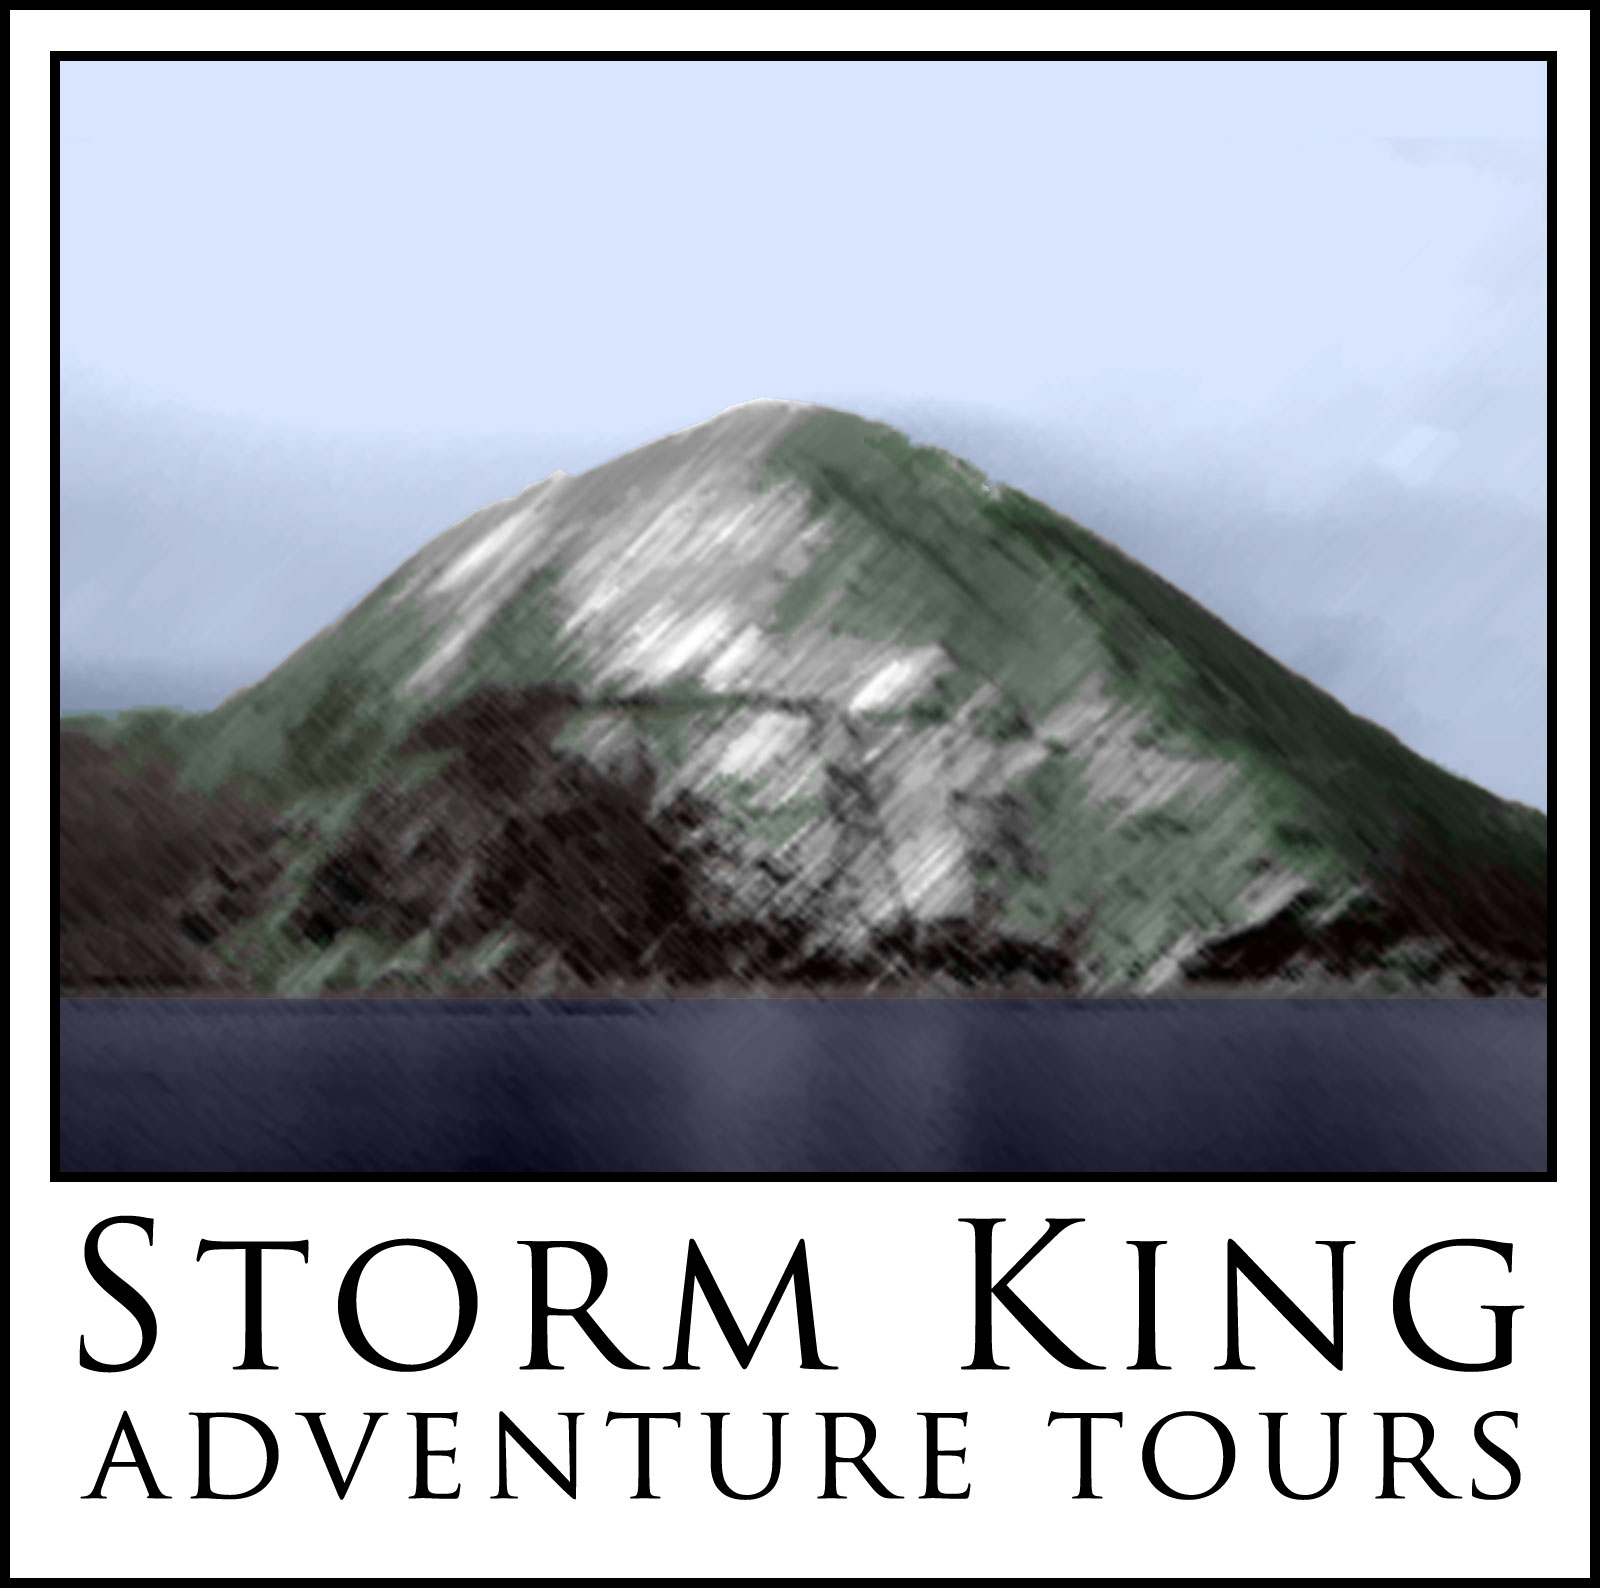 storm king adventure tours logo